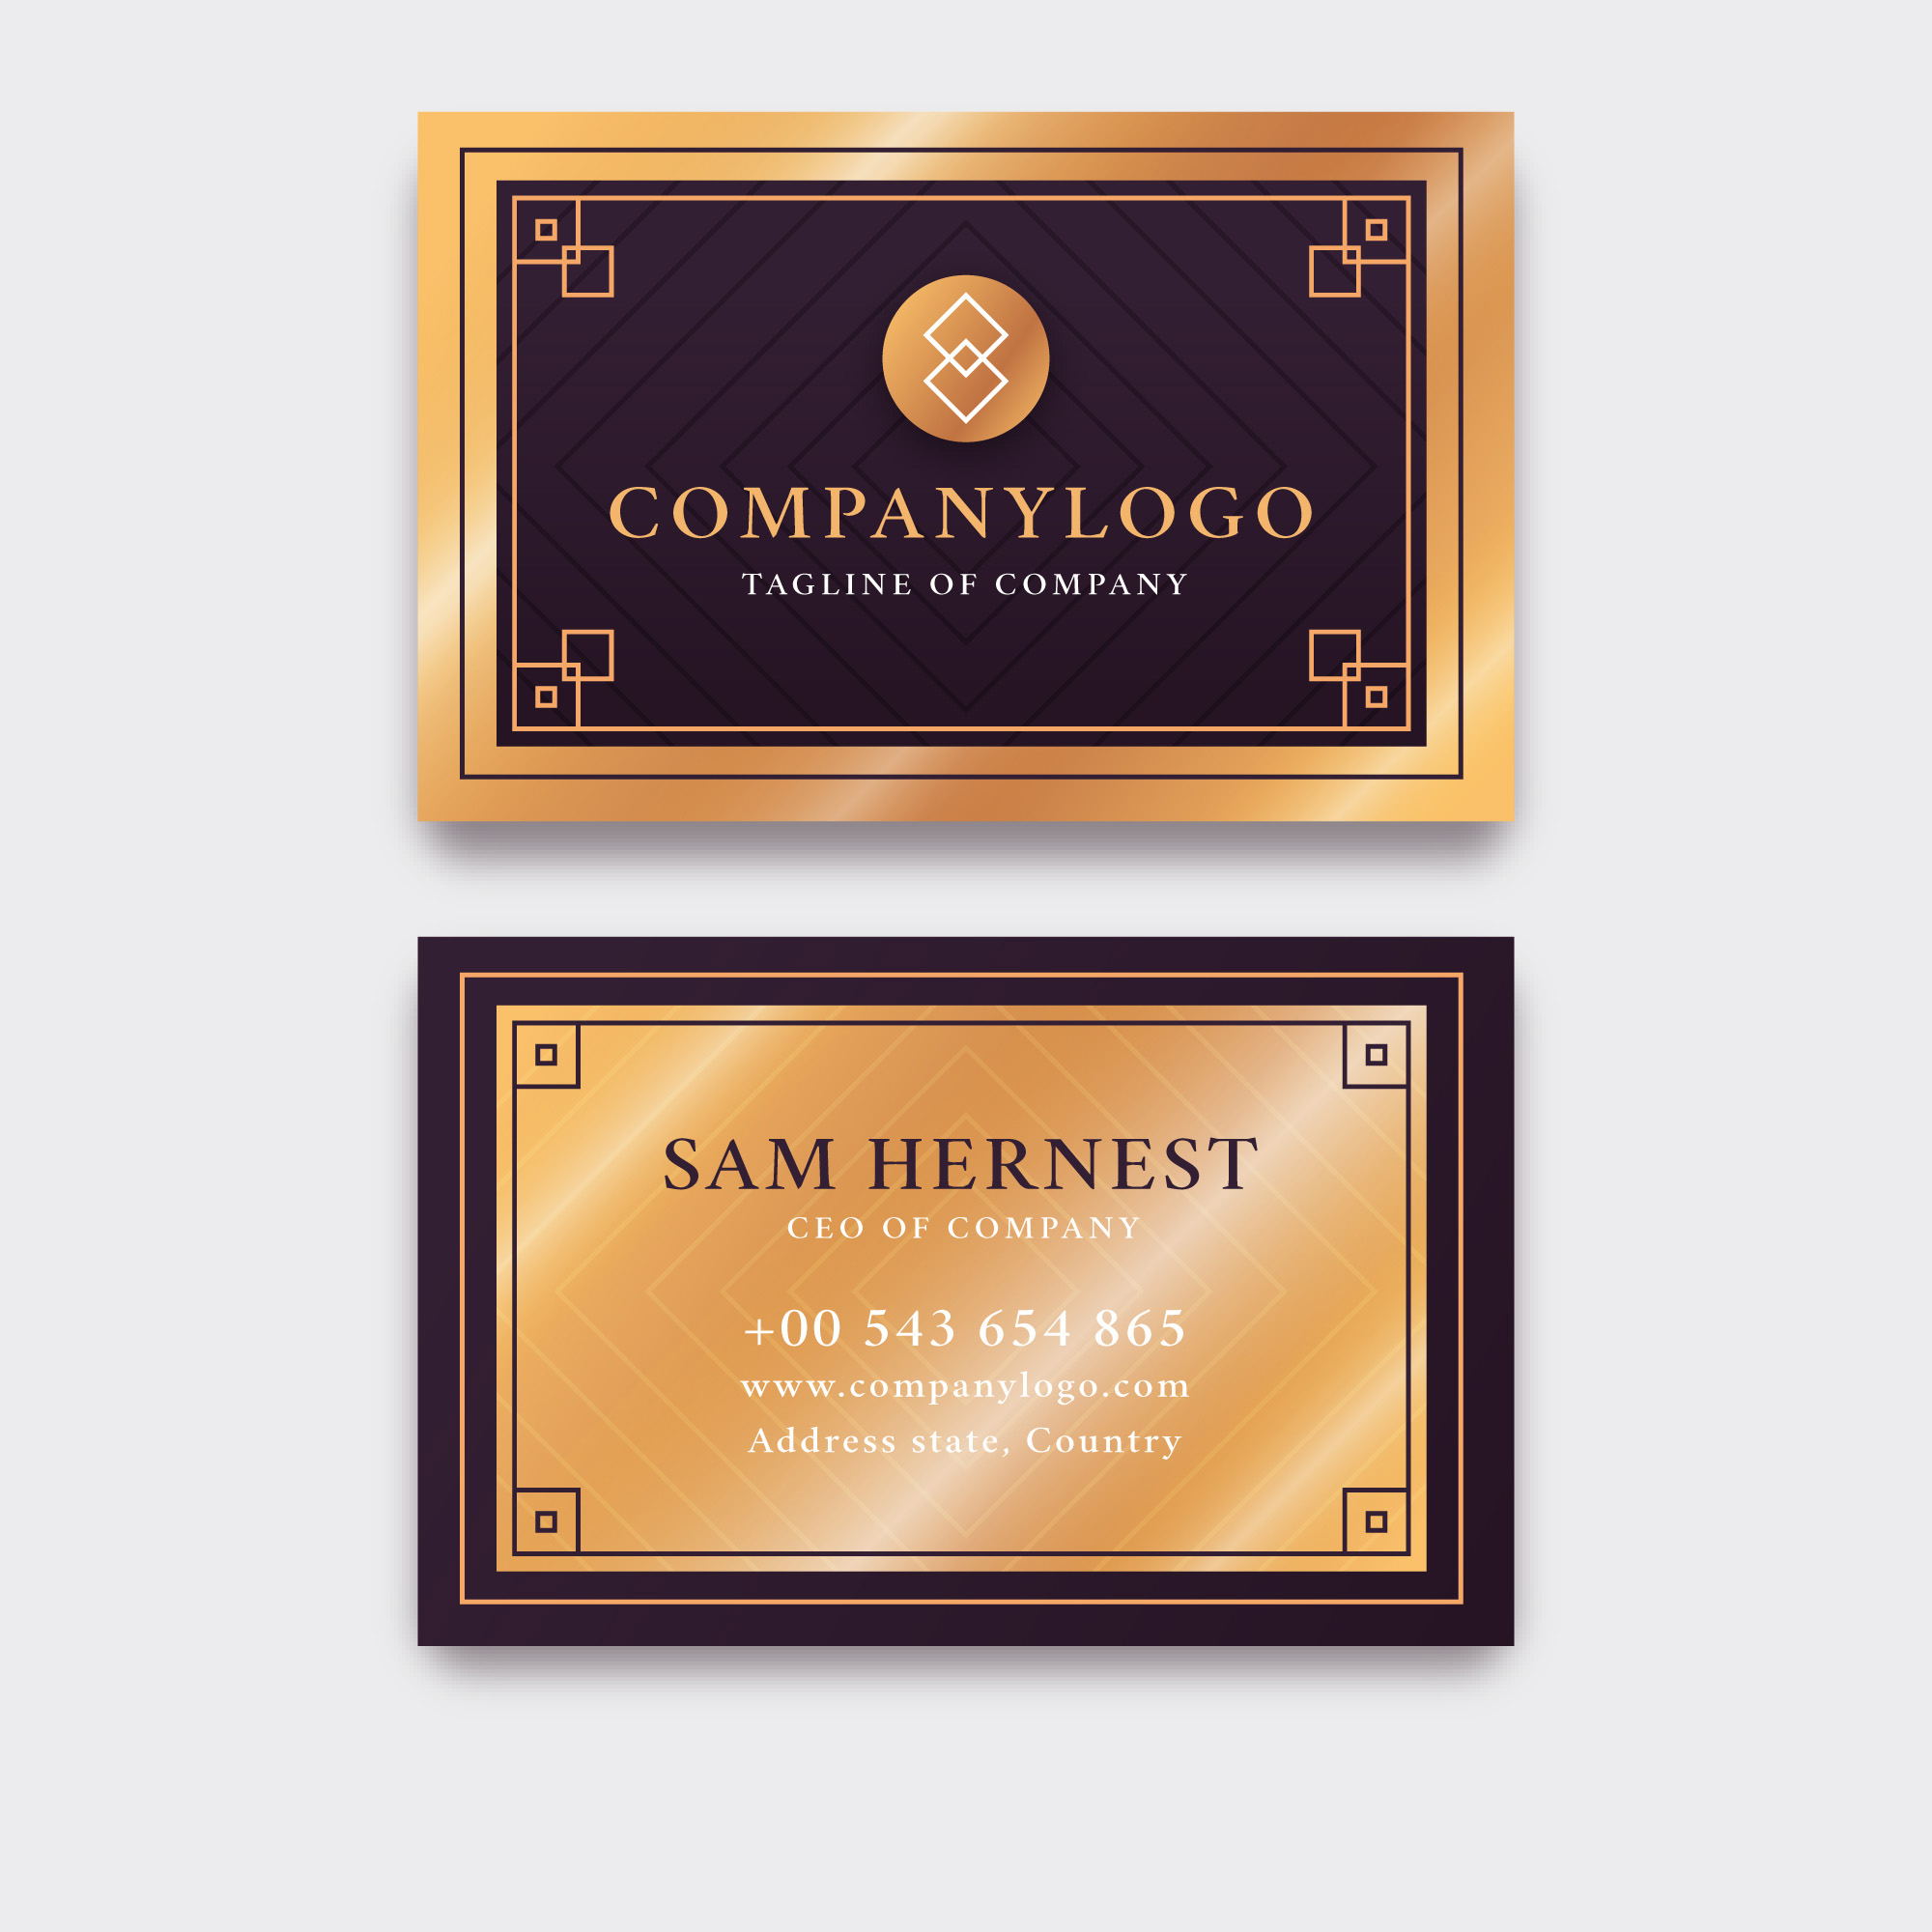 I will design luxury business card letterhead and branding stationery items